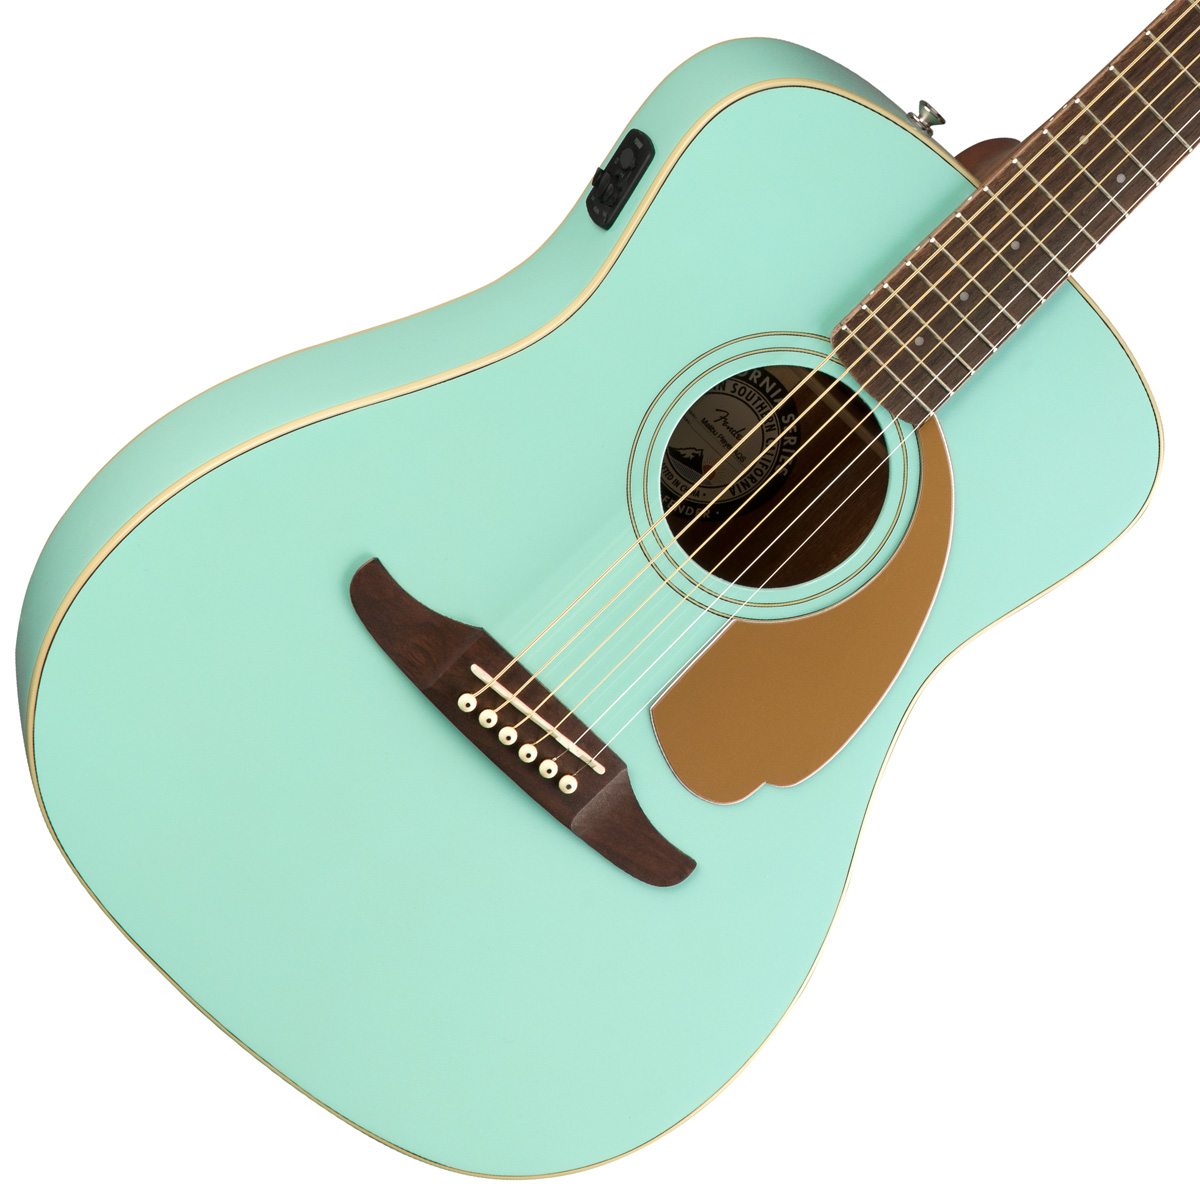 FENDER / MALIBU PLAYER AQUA SPLASH (AQS)【CALIFORNIA SERIES】フェンダー アコースティックギター【渋谷店】